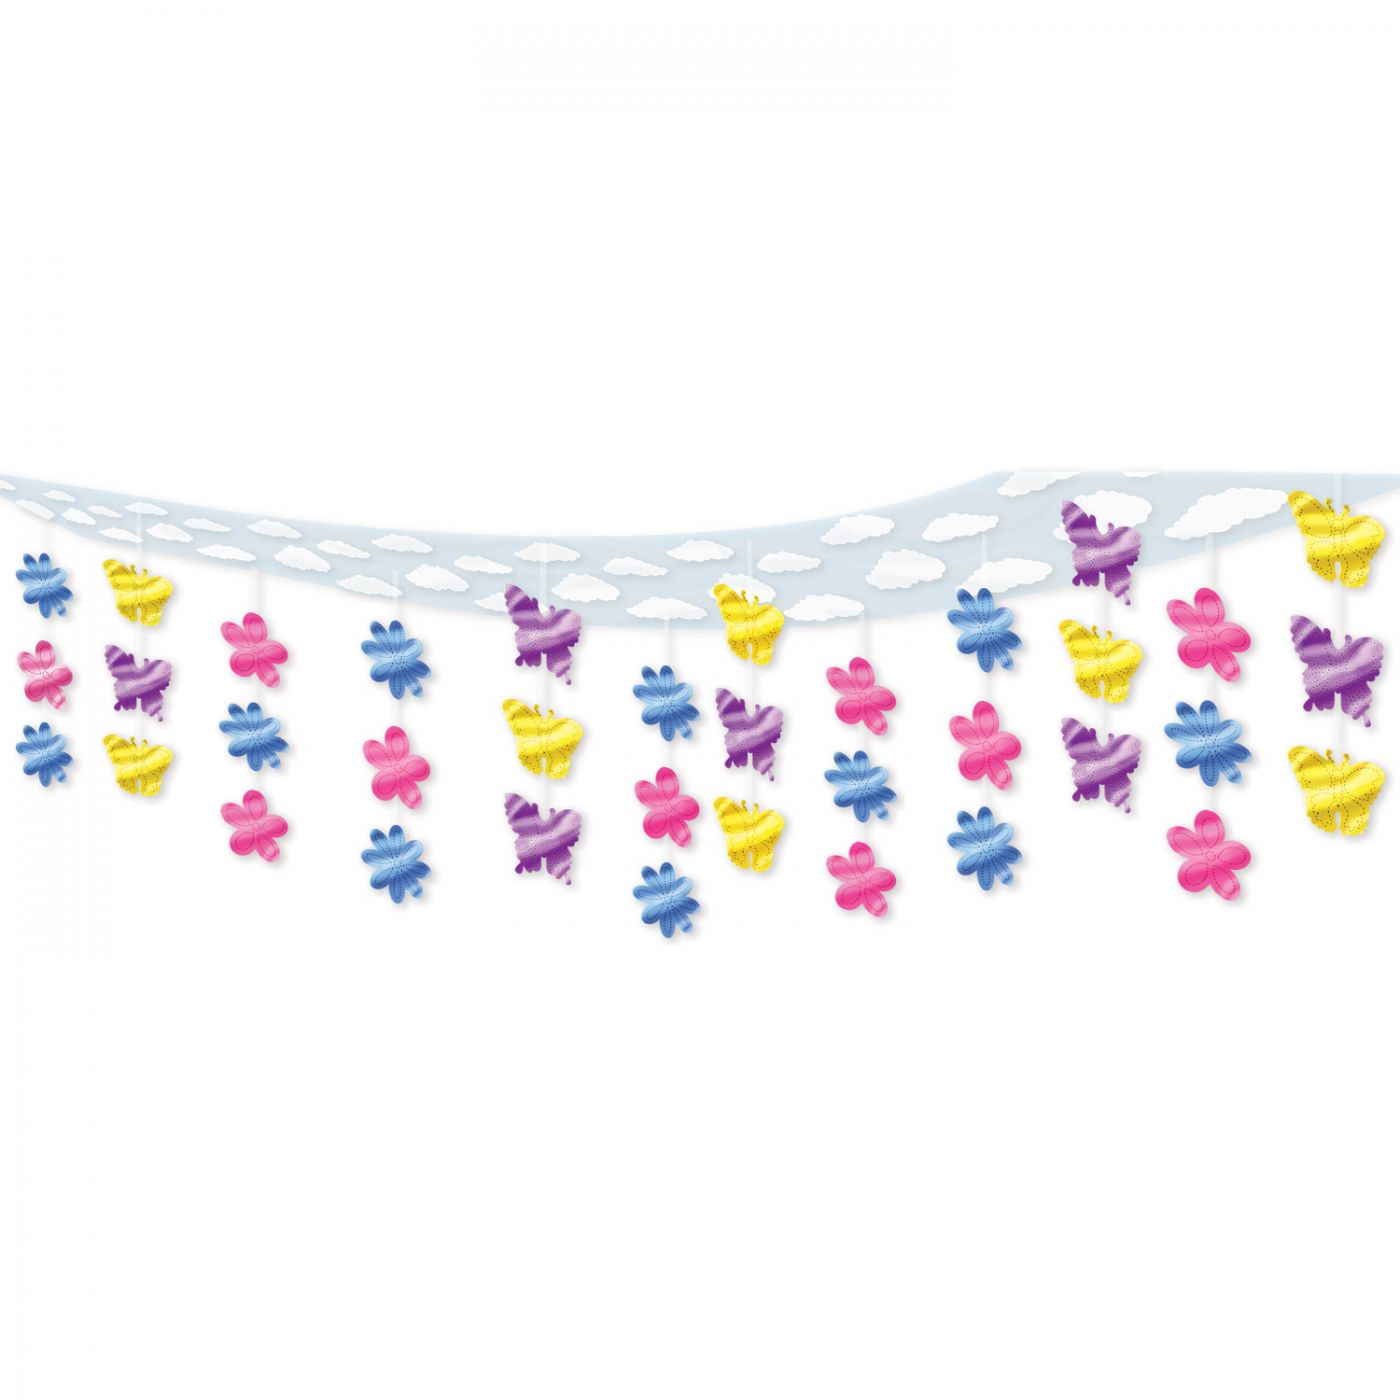 Butterfly & Flower Ceiling Decor (6) image